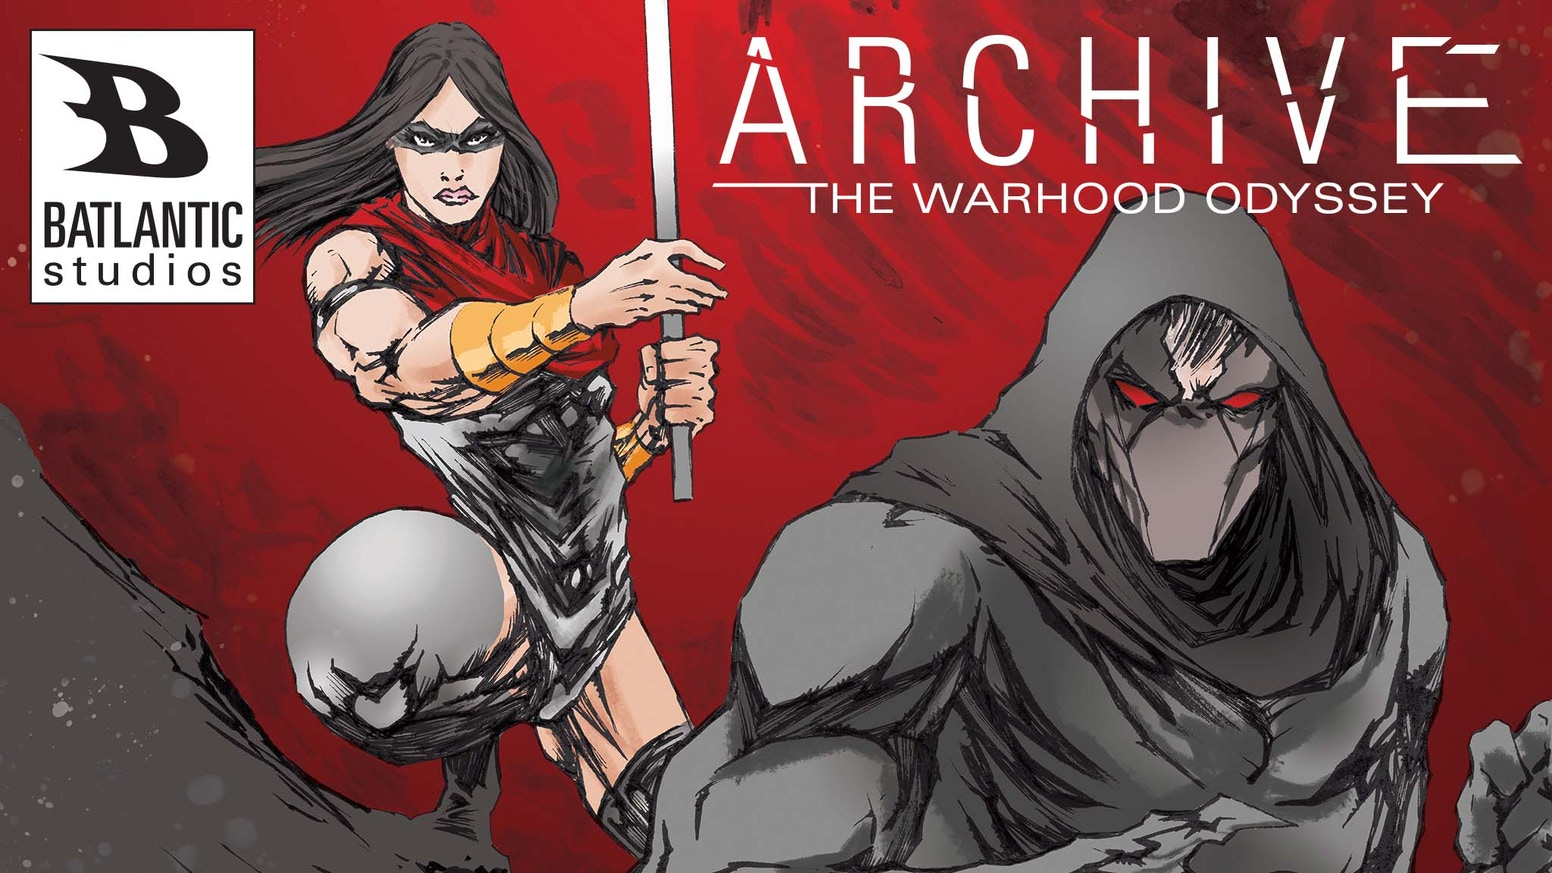 ARCHIVE The WarHood Odyssey FIRST ARC! Era Nalyd and Tachi battle for survival on New Selenia! The Walking Dead meets Star Wars!